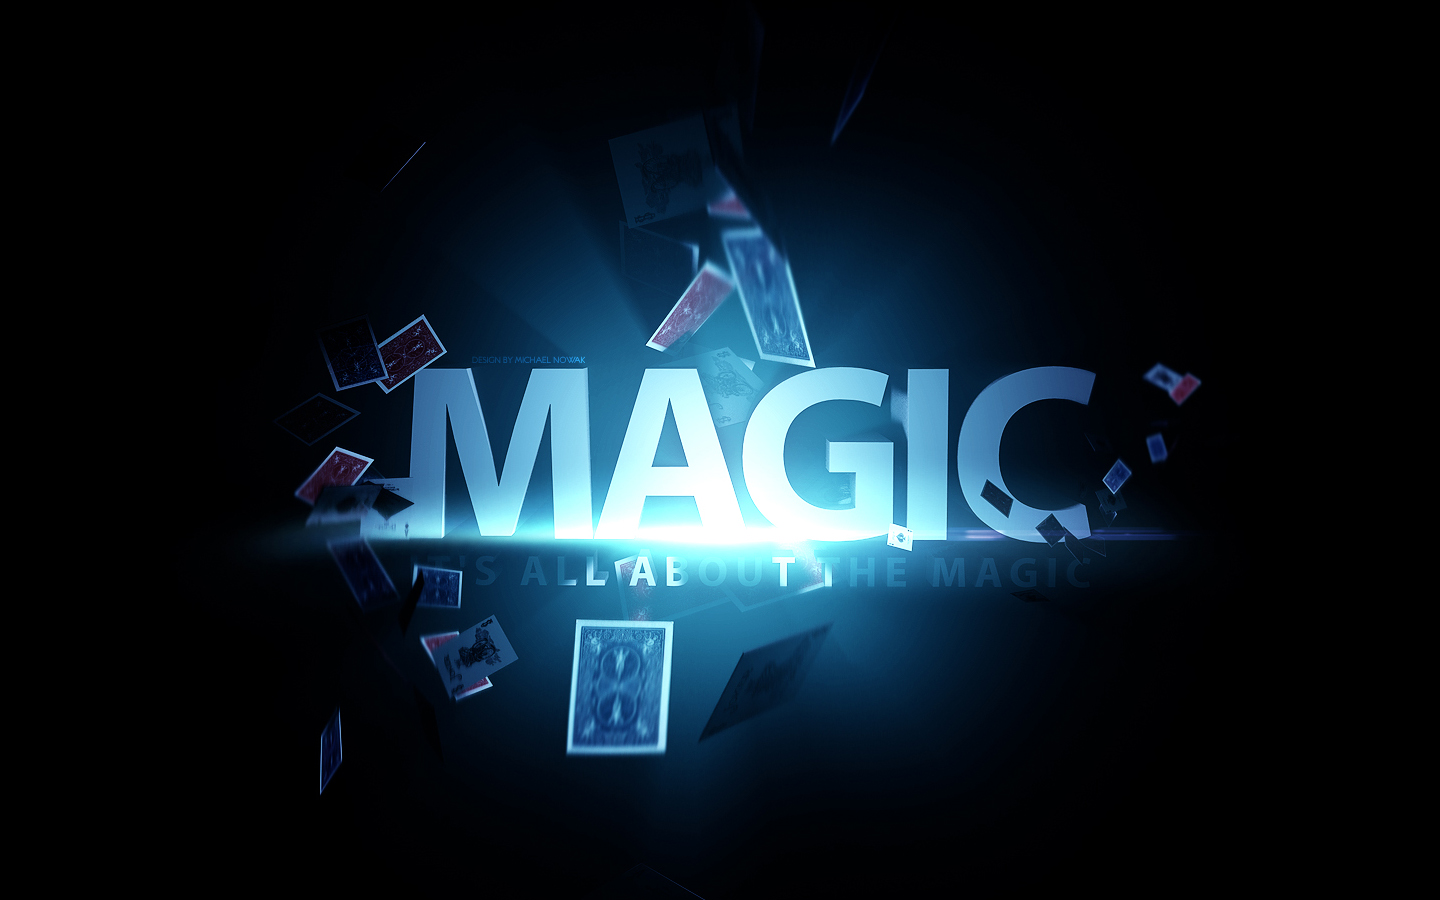 It's all about the magic - wallpaper by MichalNowak